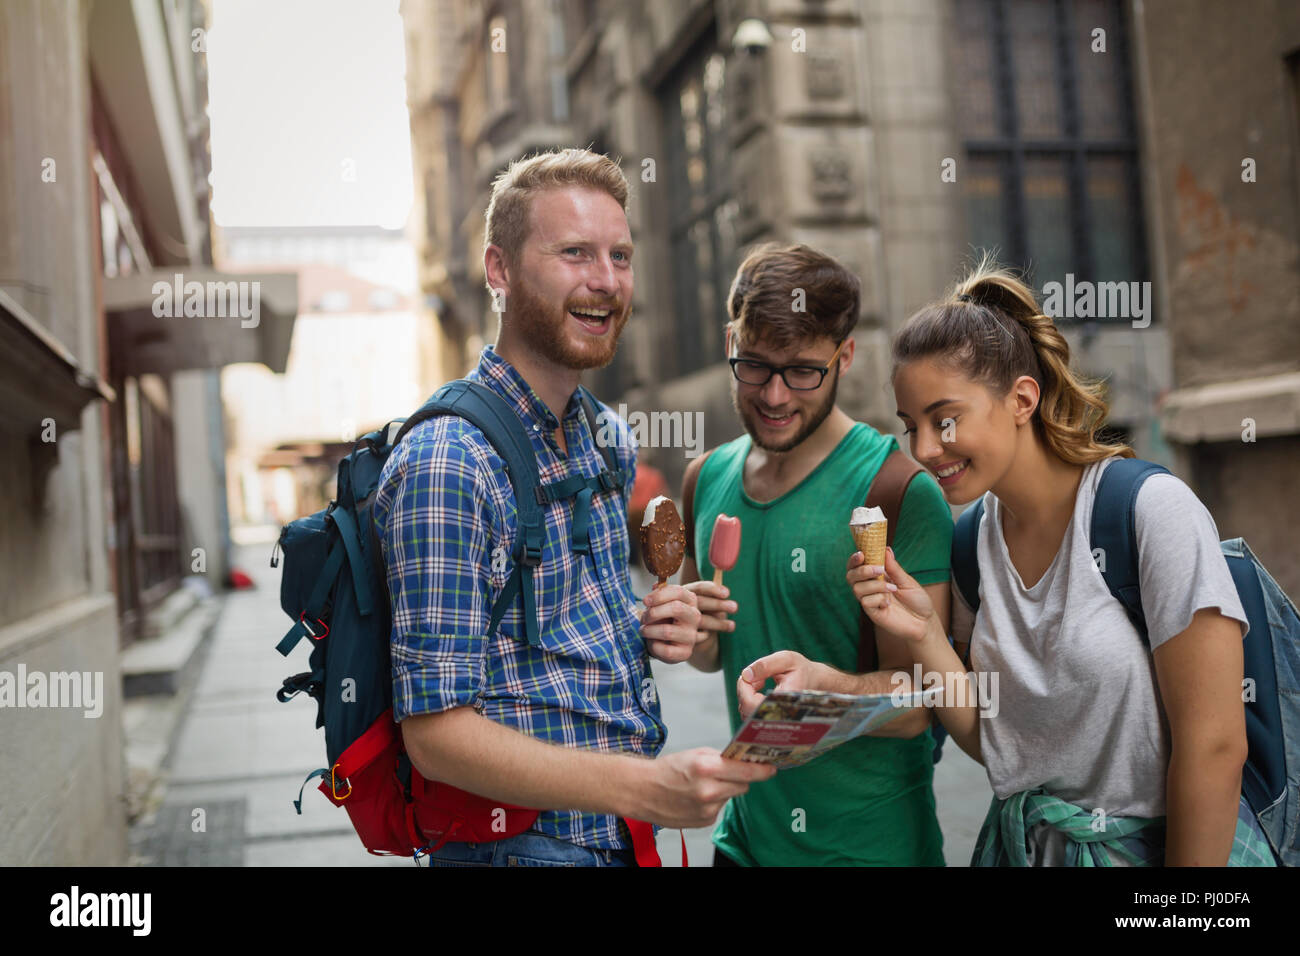 Travelling young people sightseeing - Stock Image